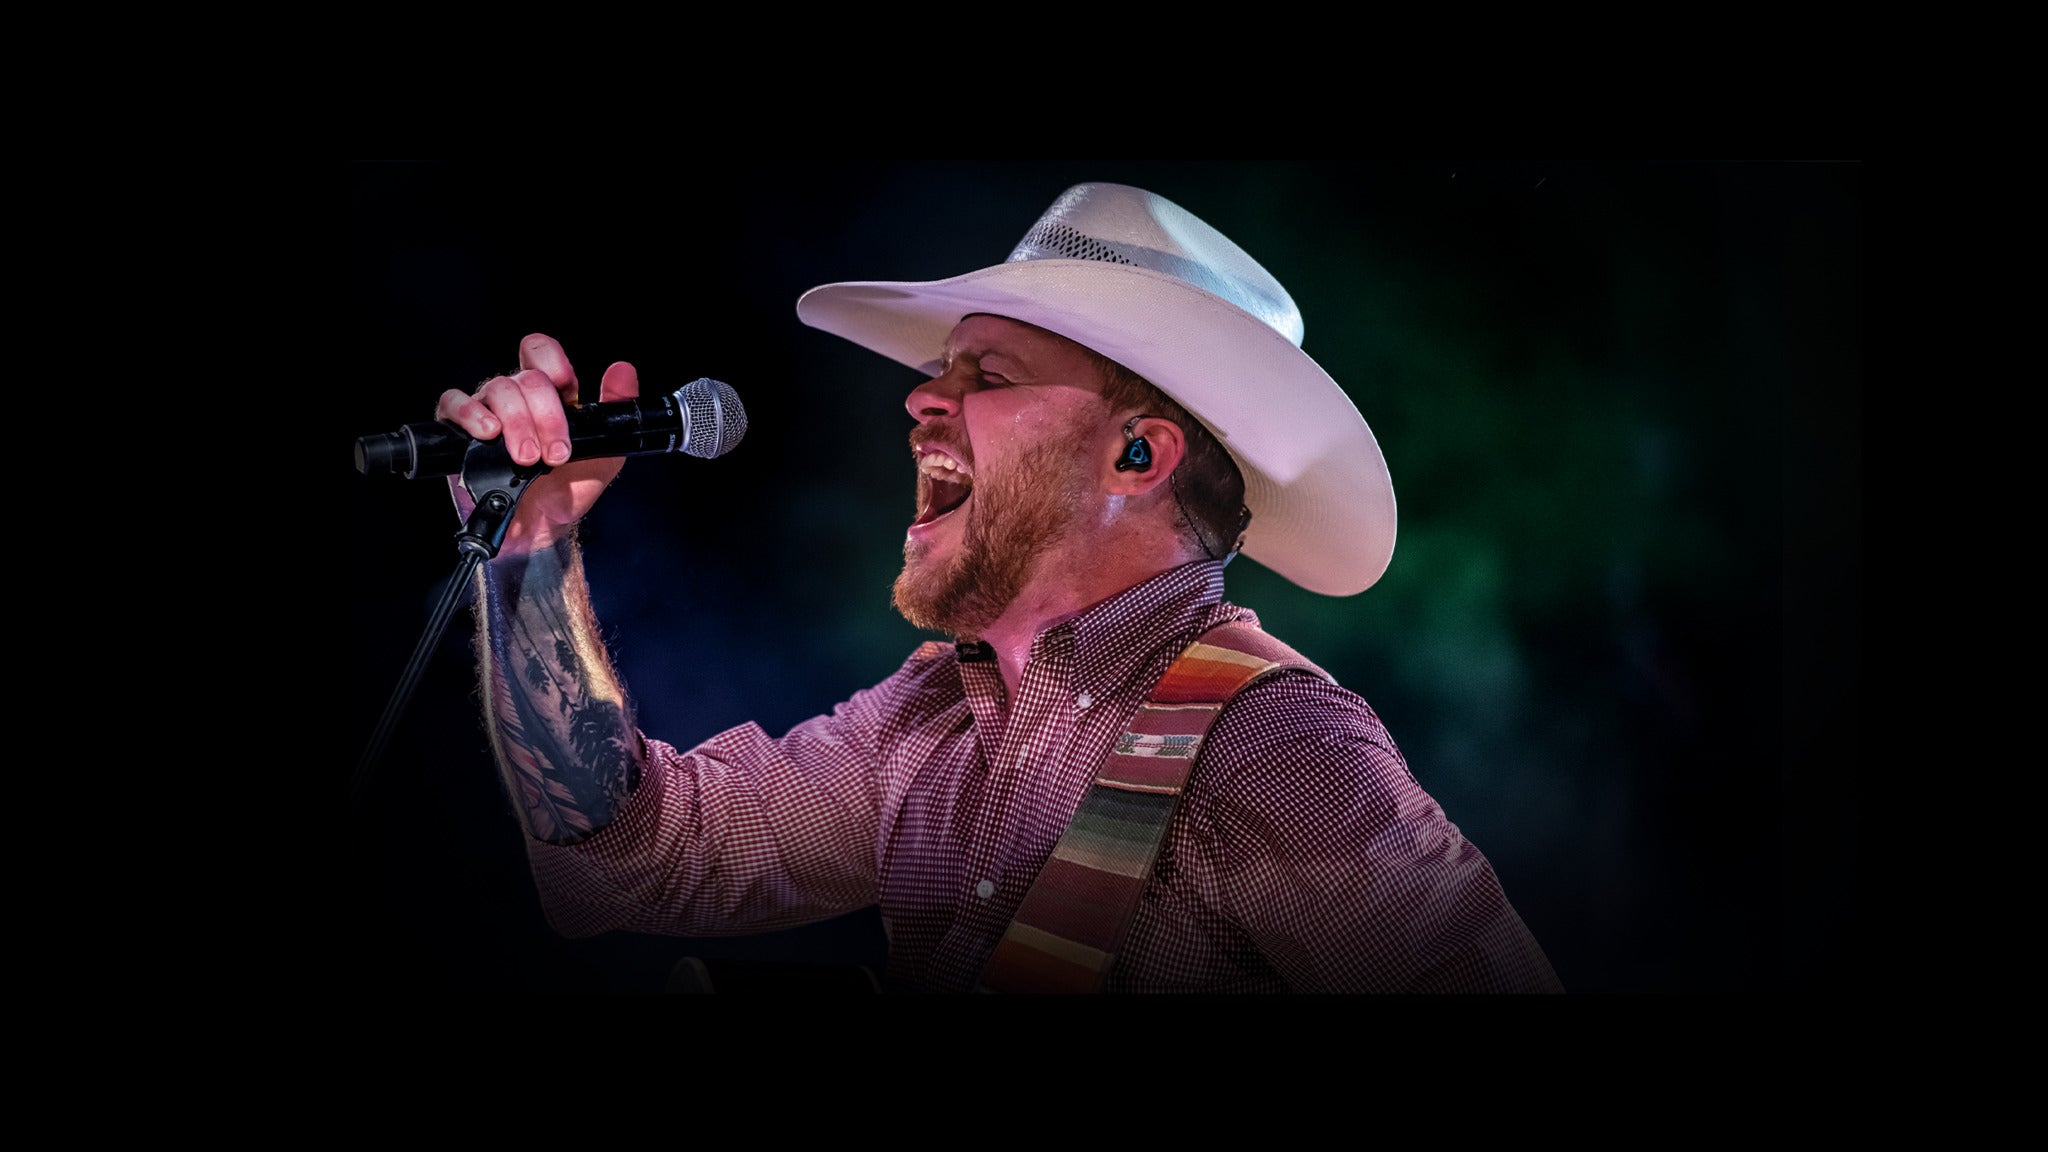 Cody Johnson at Coca-Cola Roxy